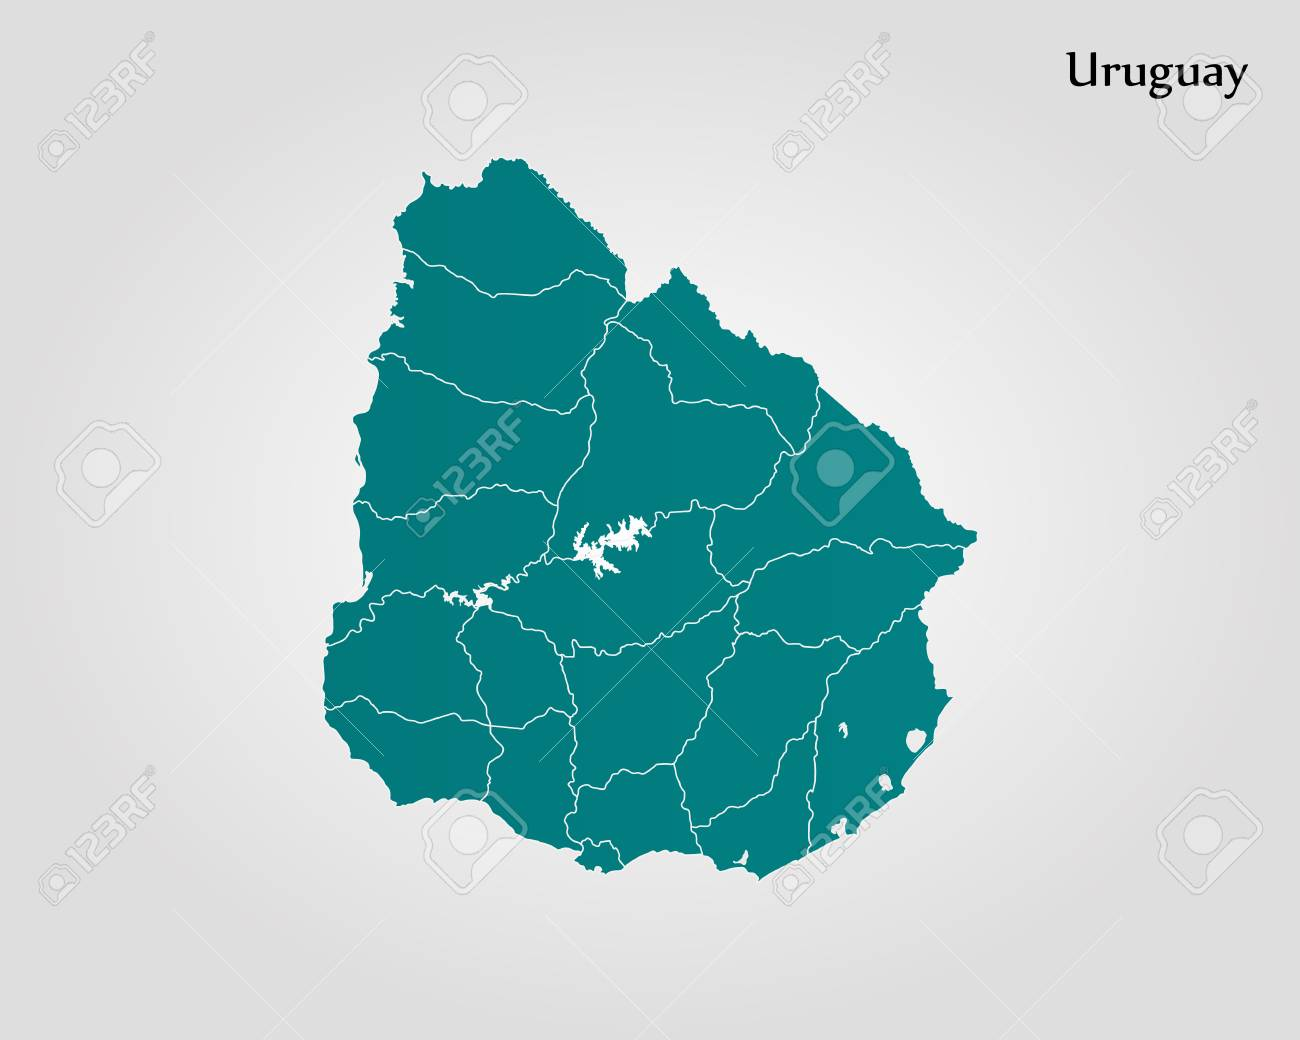 Map Of Uruguay Vector Illustration World Map Royalty Free Cliparts